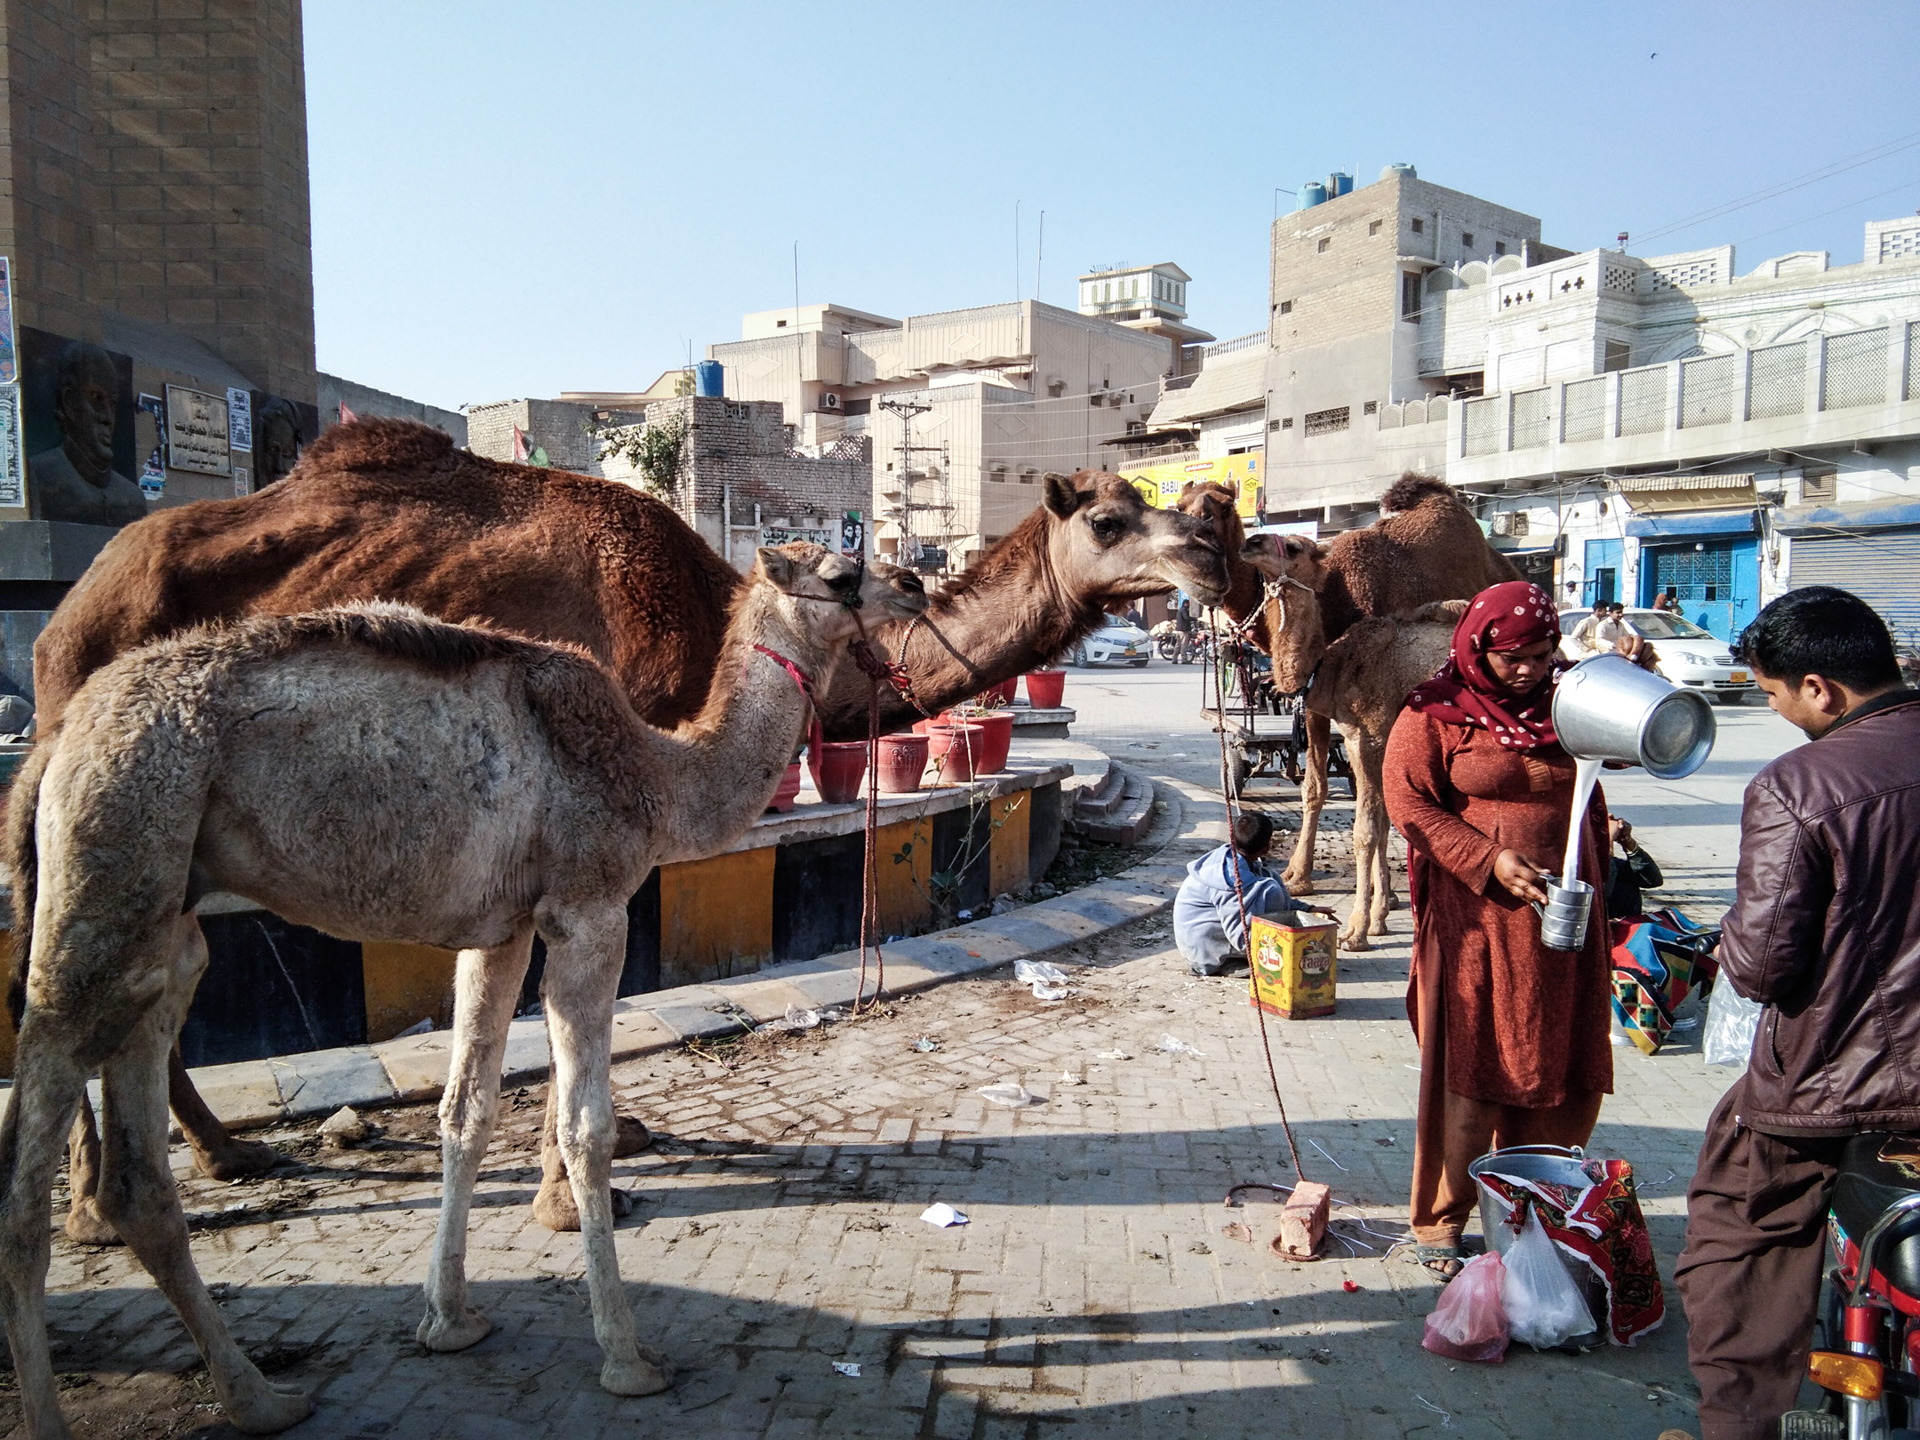 A woman with two camels in town pours camel milk for a man on a motorcycle.